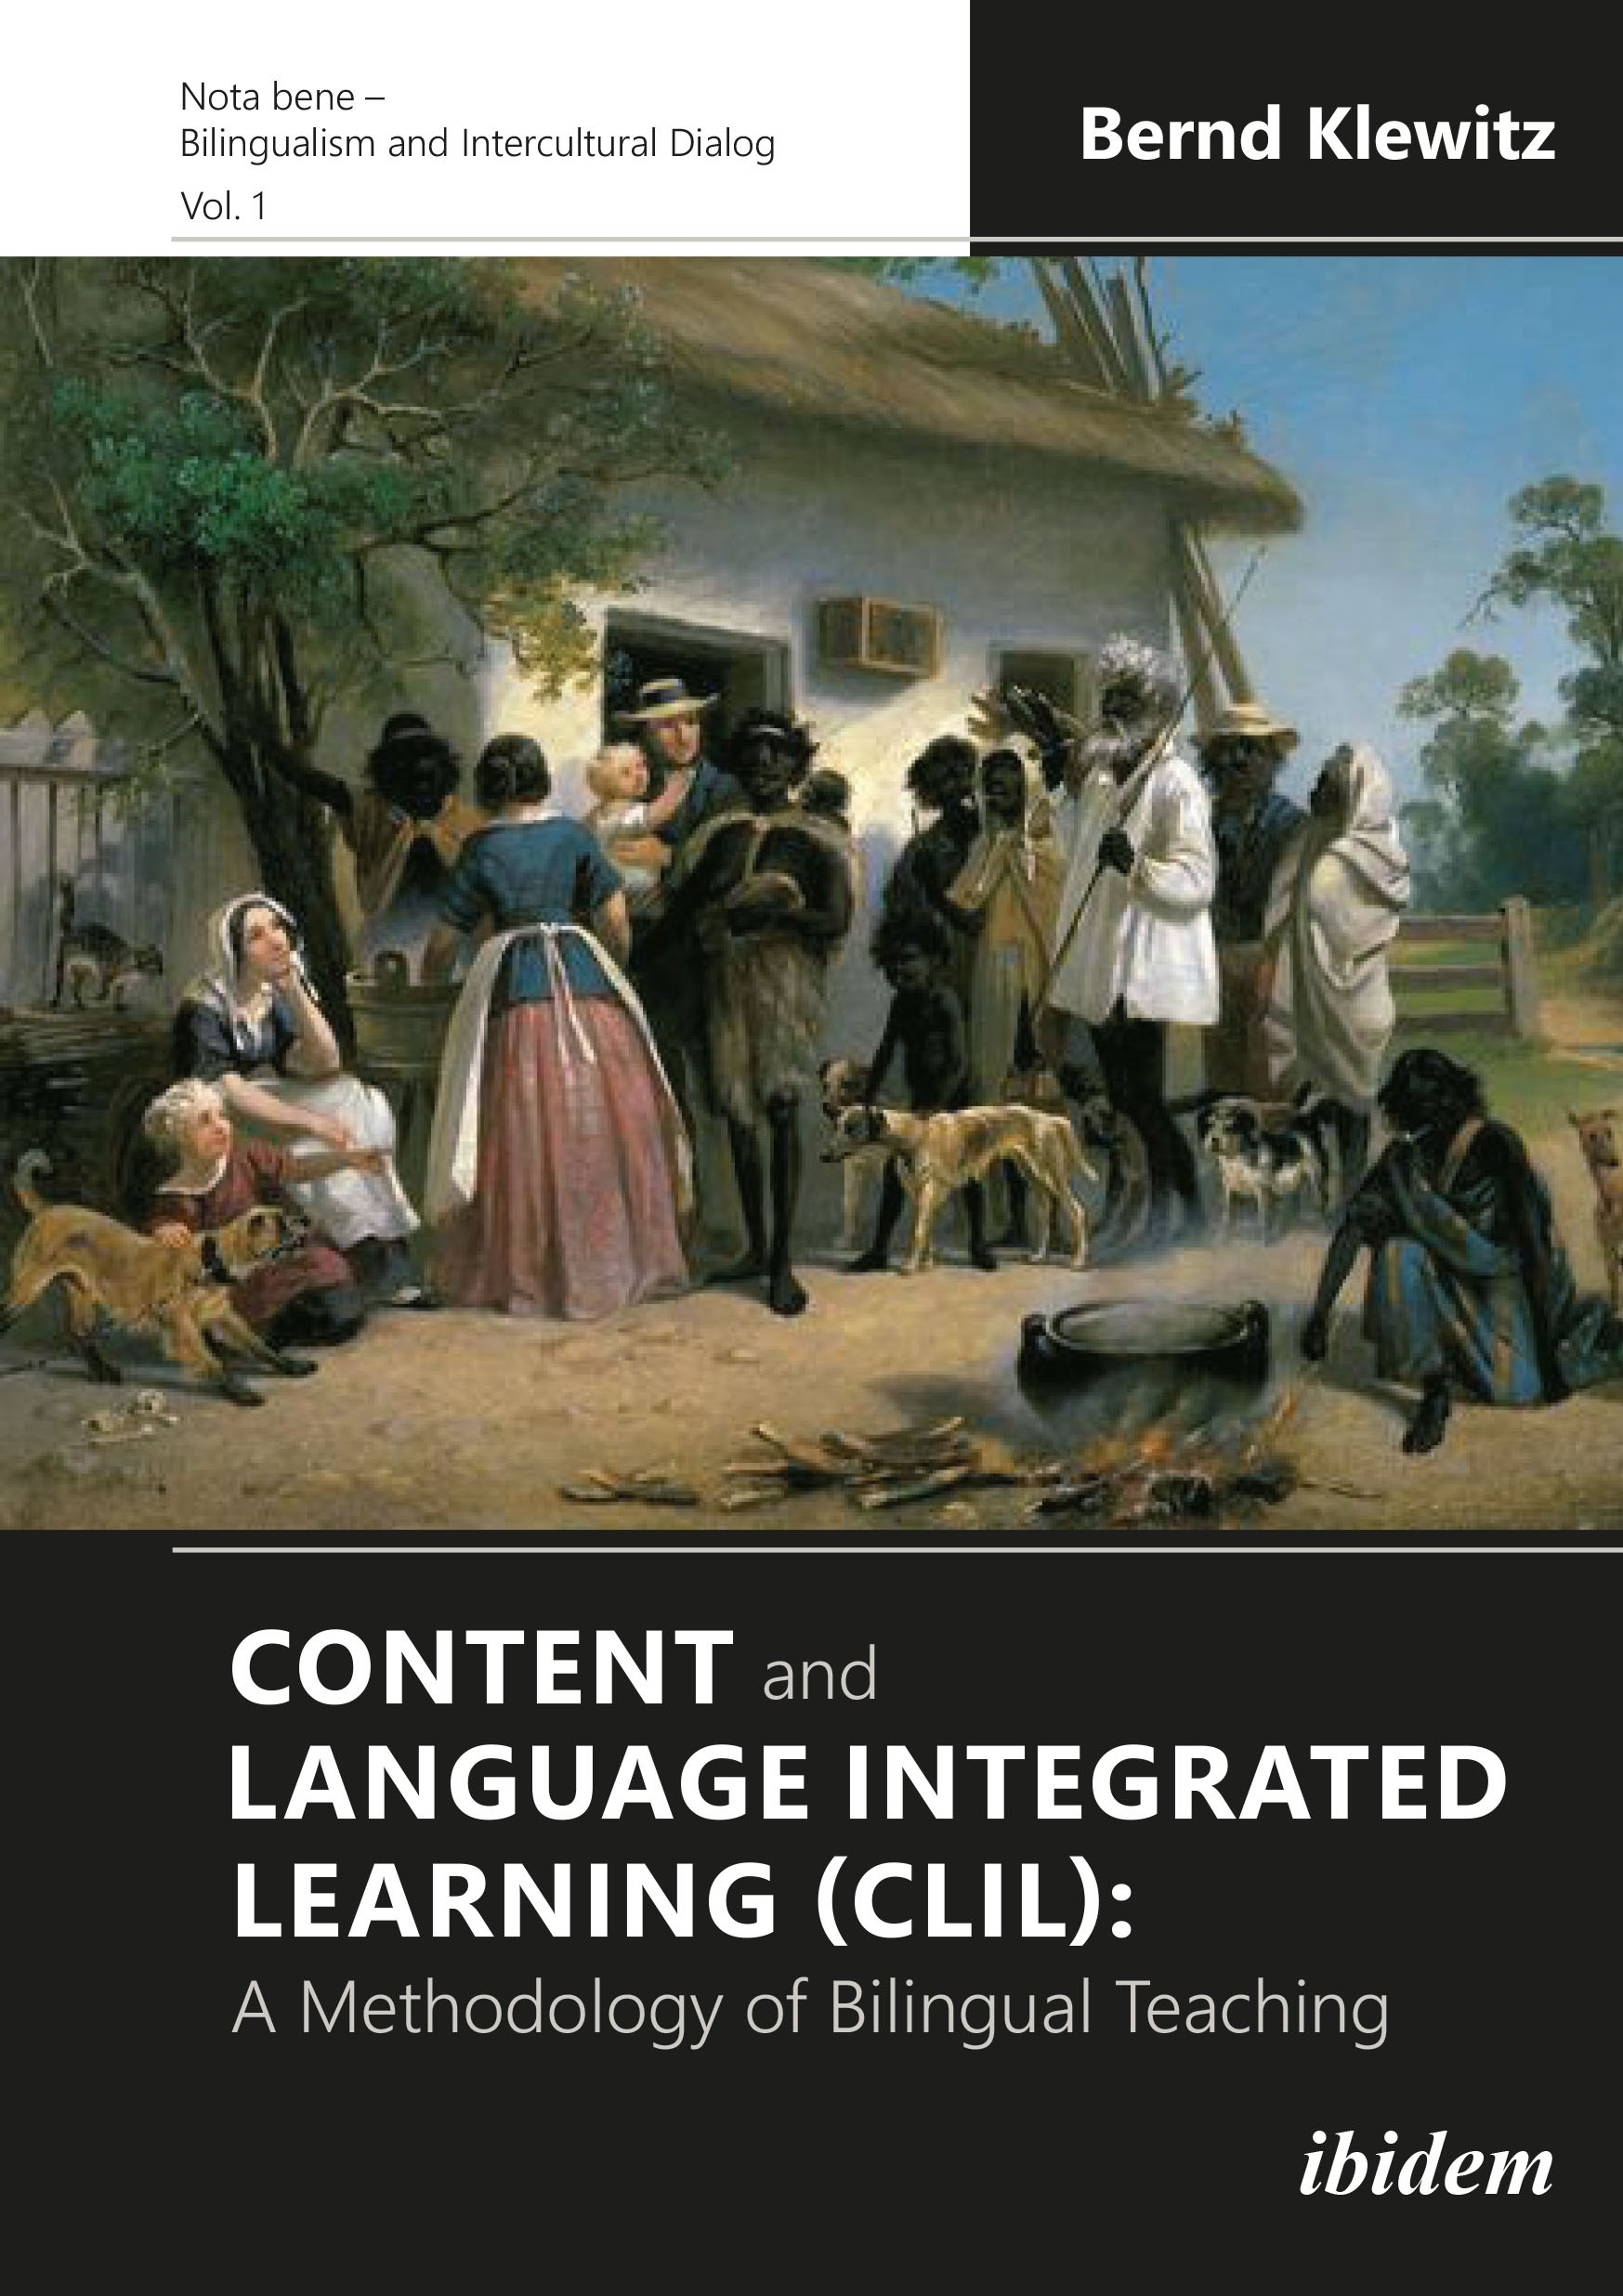 Content and Language Integrated Learning (CLIL): A Methodology of Bilingual Teaching